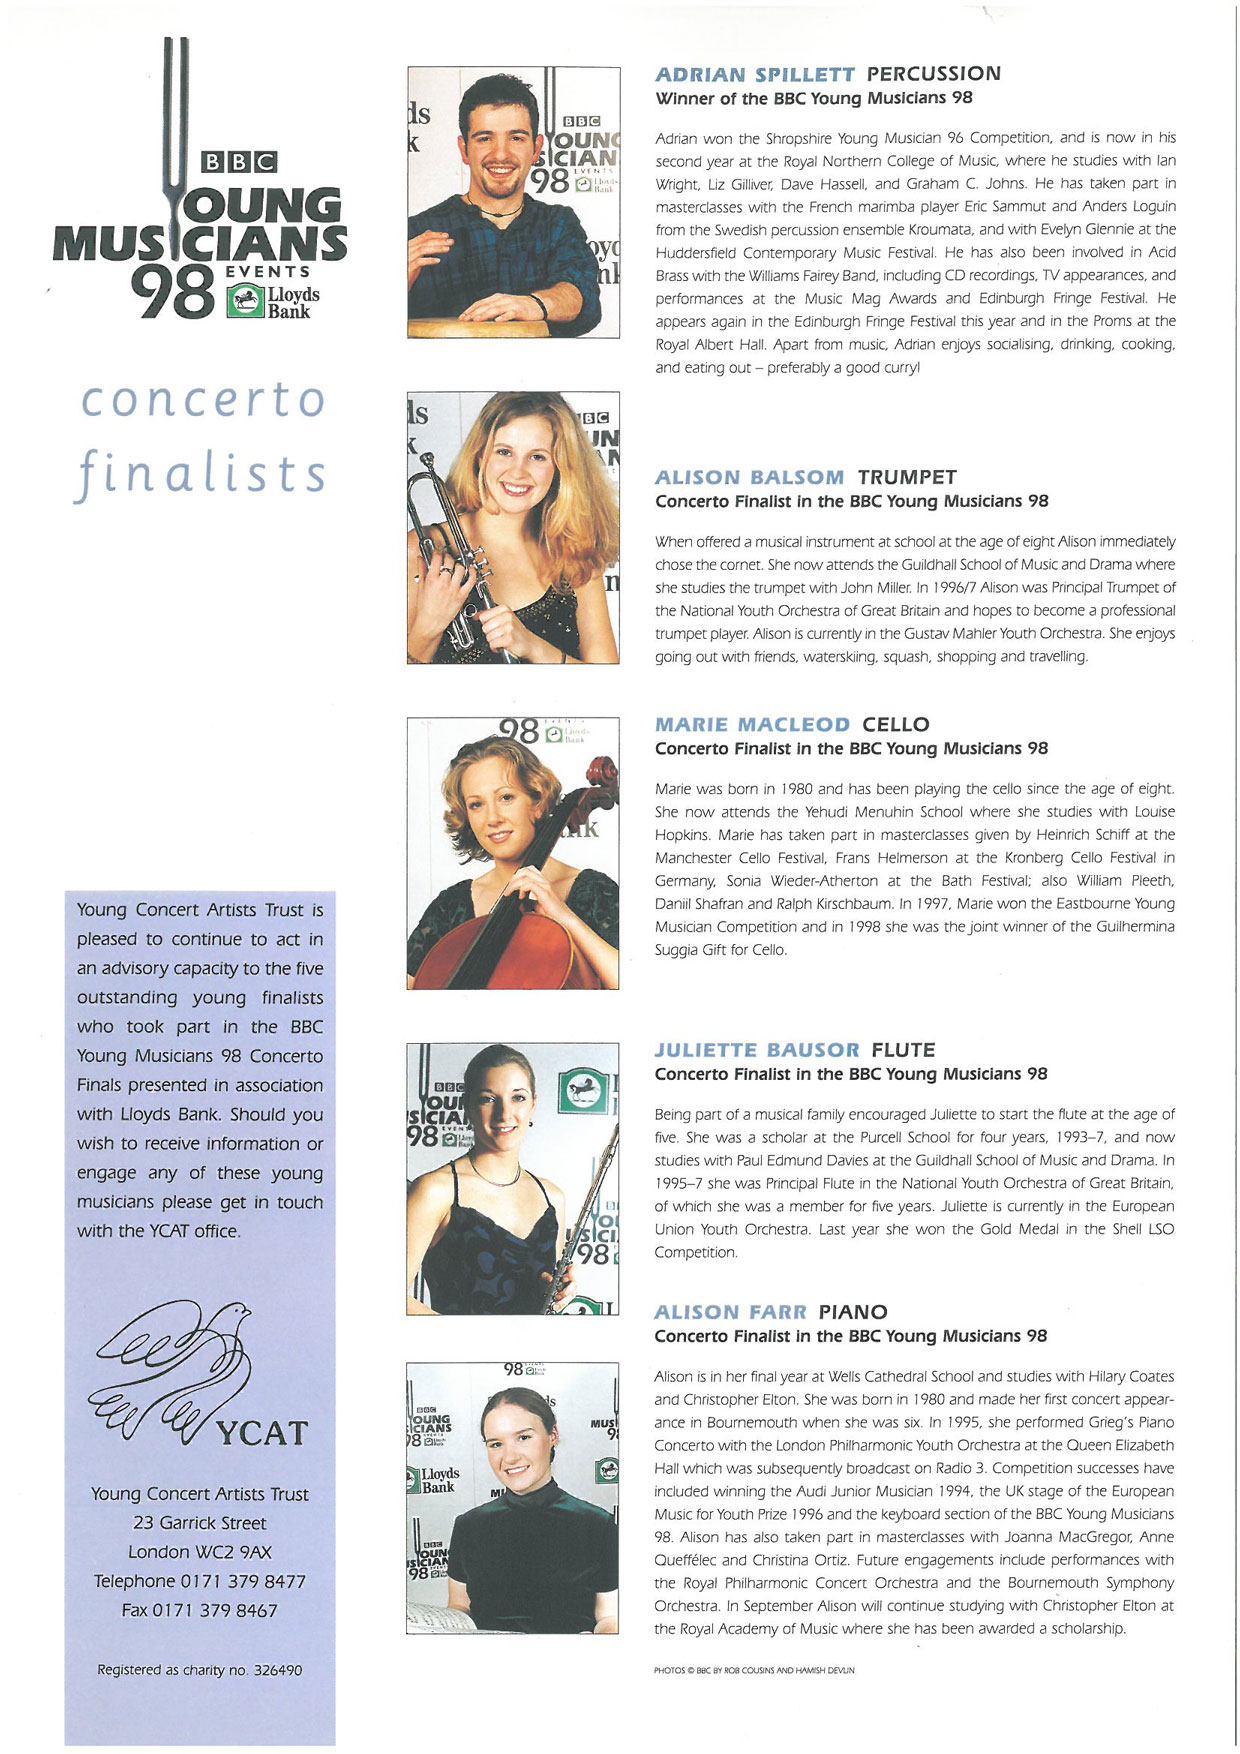 BBC Young Musician Concerto Finalists 1998